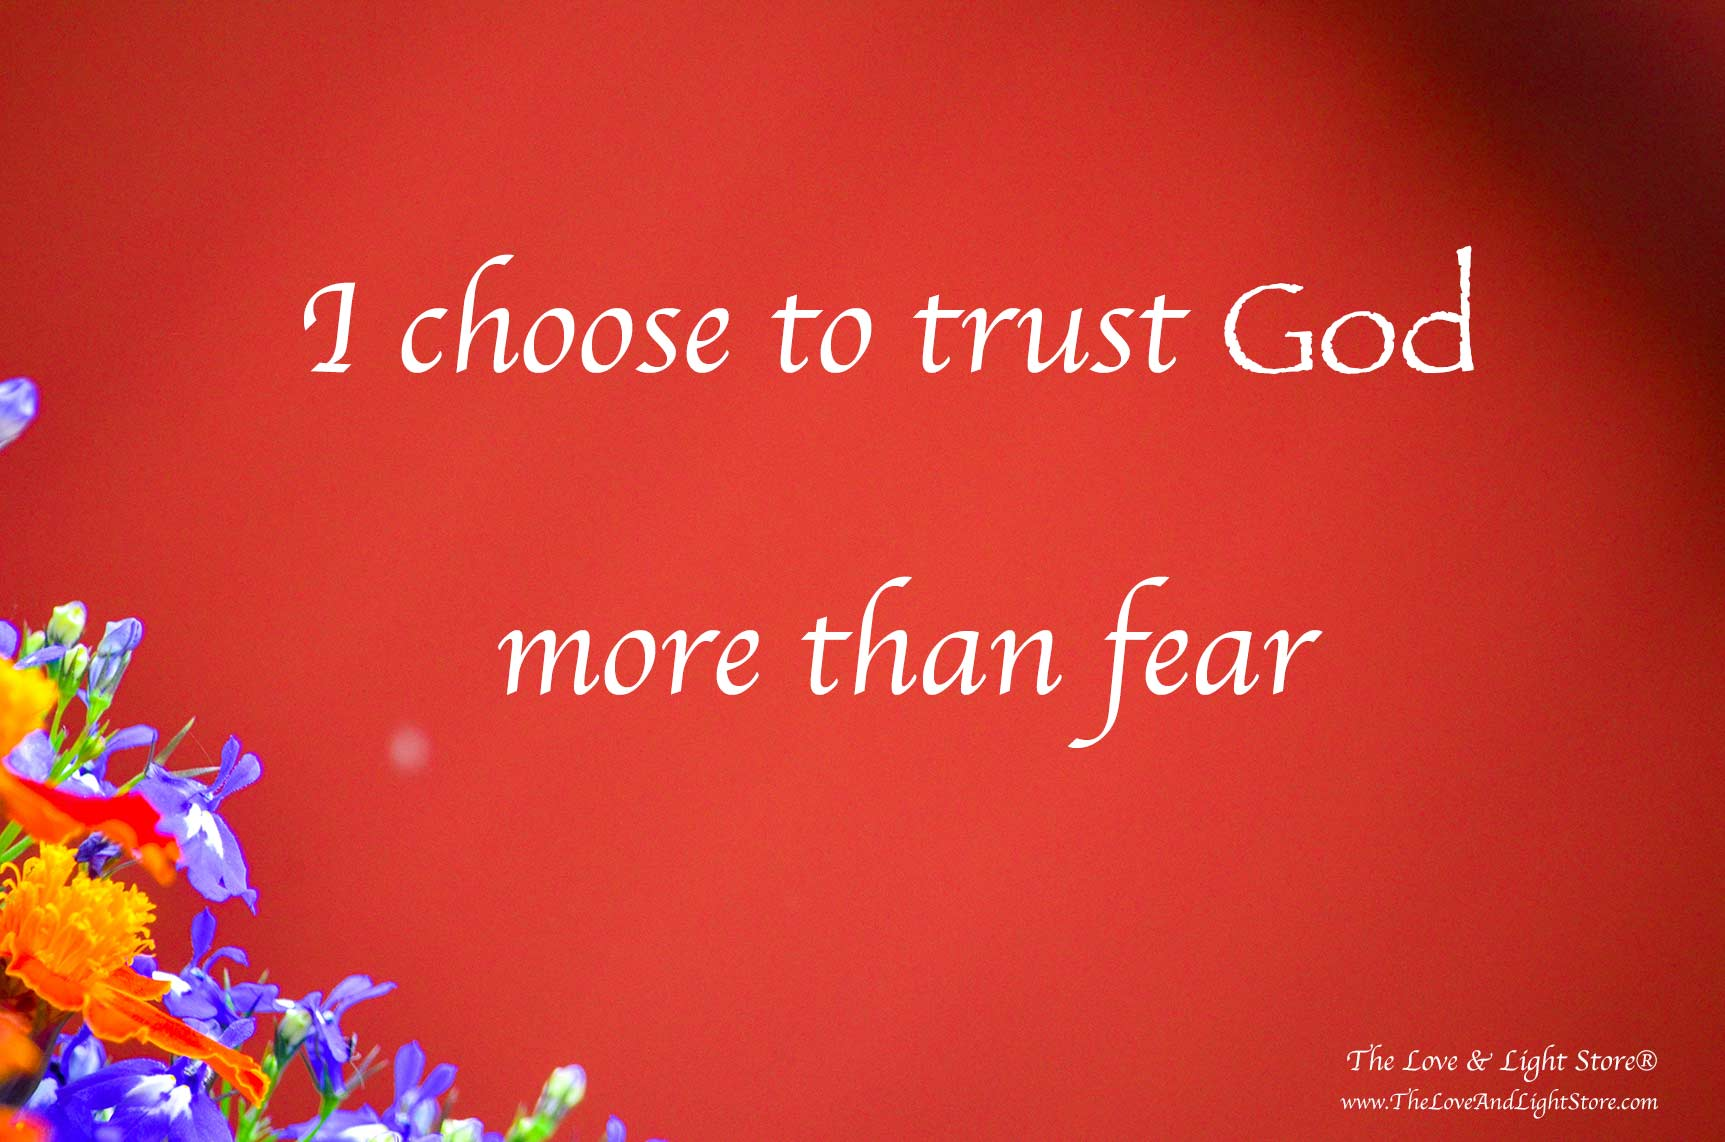 I choose to trust God more than fear - by Daniel Roquéo